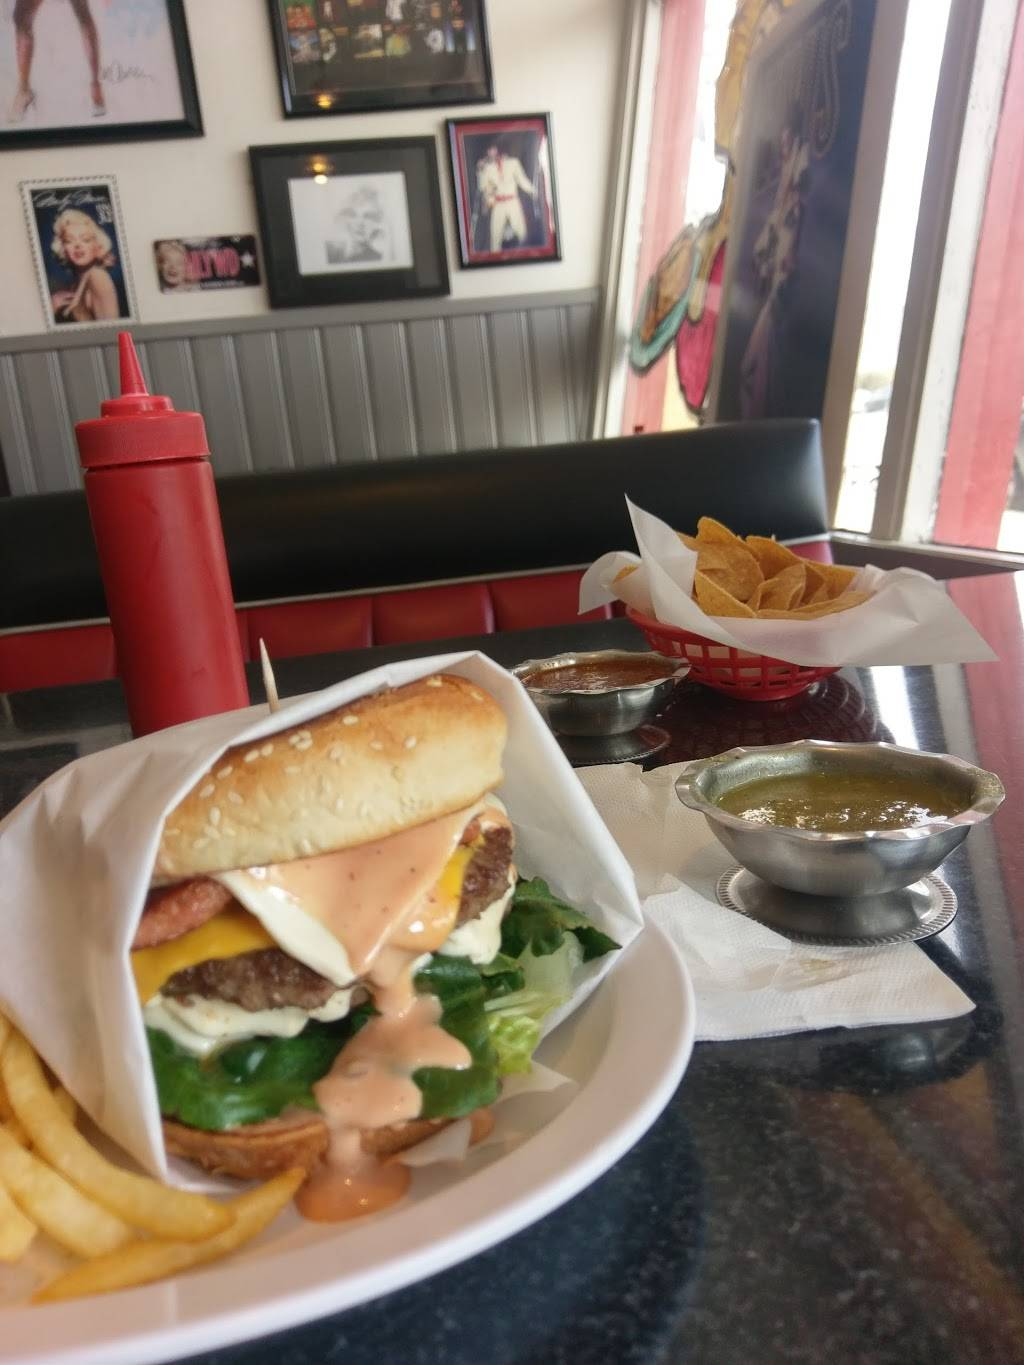 Chicas Place Deli & Grill   restaurant   251 S Irwindale Ave, Azusa, CA 91702, USA   6263341341 OR +1 626-334-1341